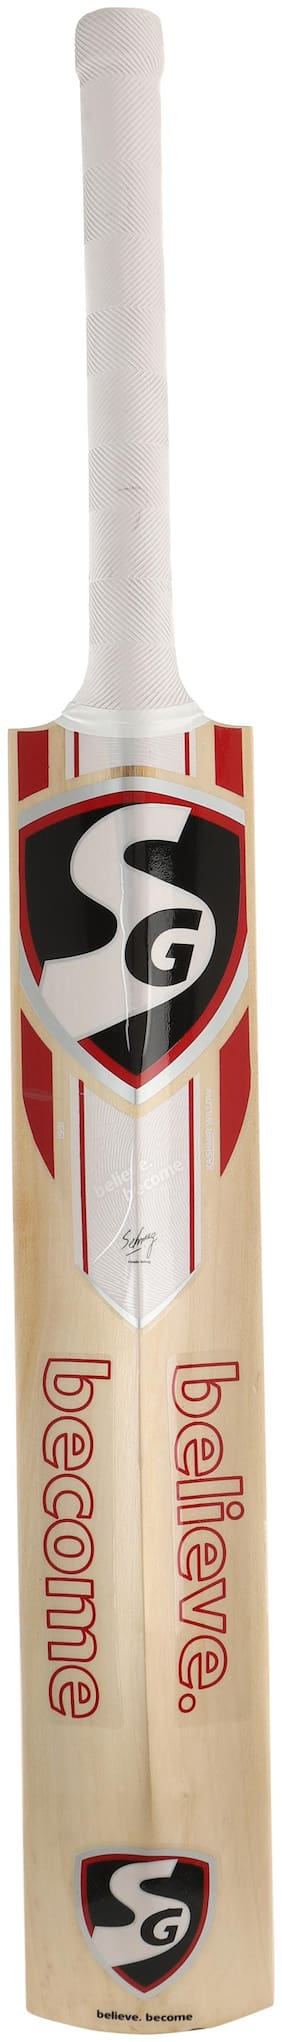 SG Boundary-Classic Bat Kashmir Willow Cricket Bats